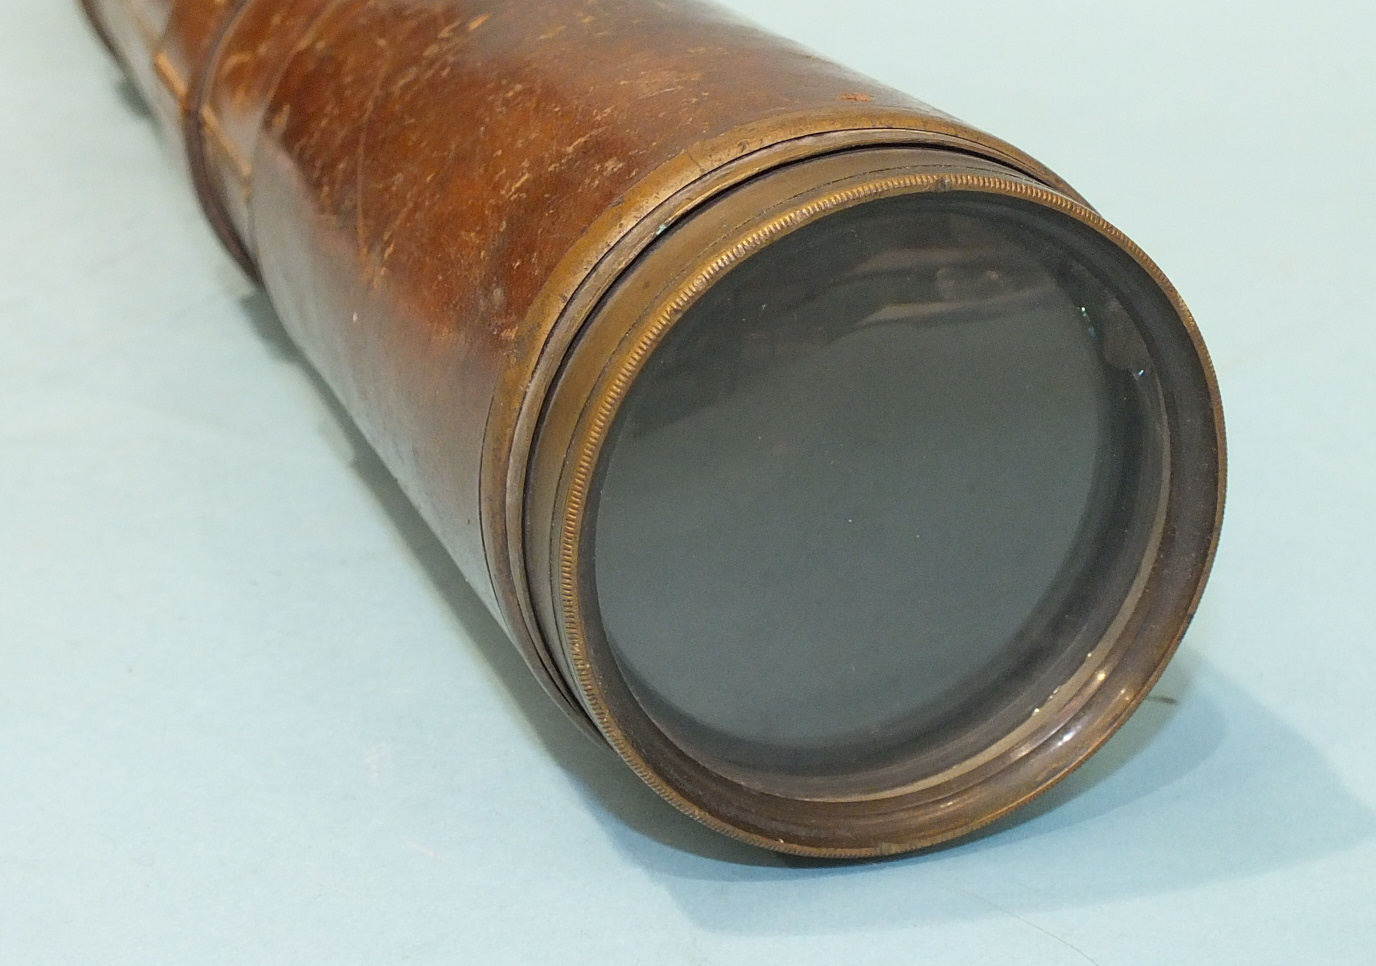 Lot 131 - A Negretti and Zambra two-draw military telescope with leather-covered grip and sun shade, dated